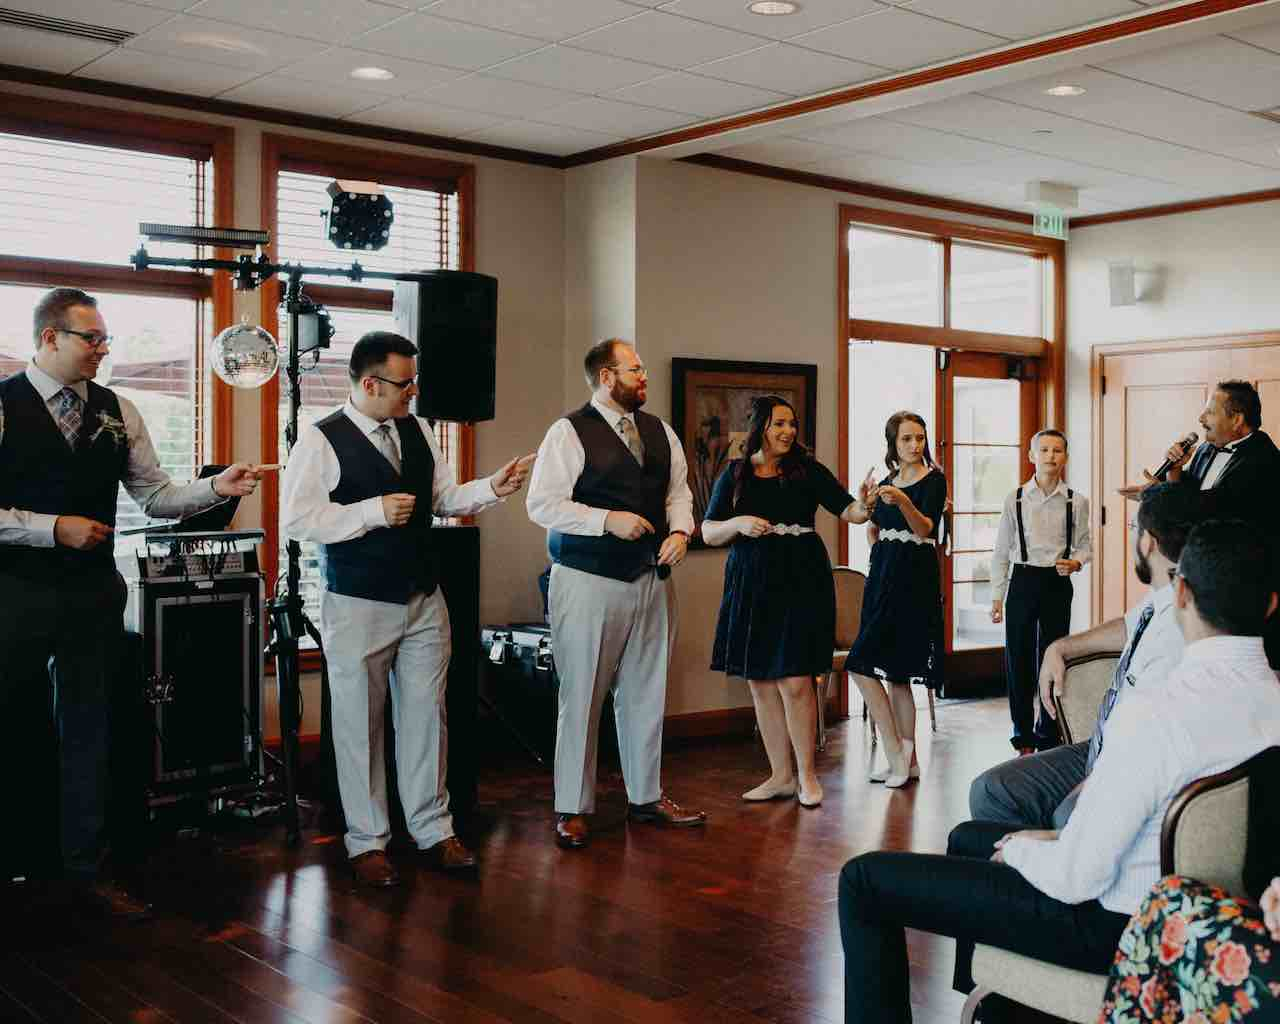 Wedding party getting things going under the direction of Paul